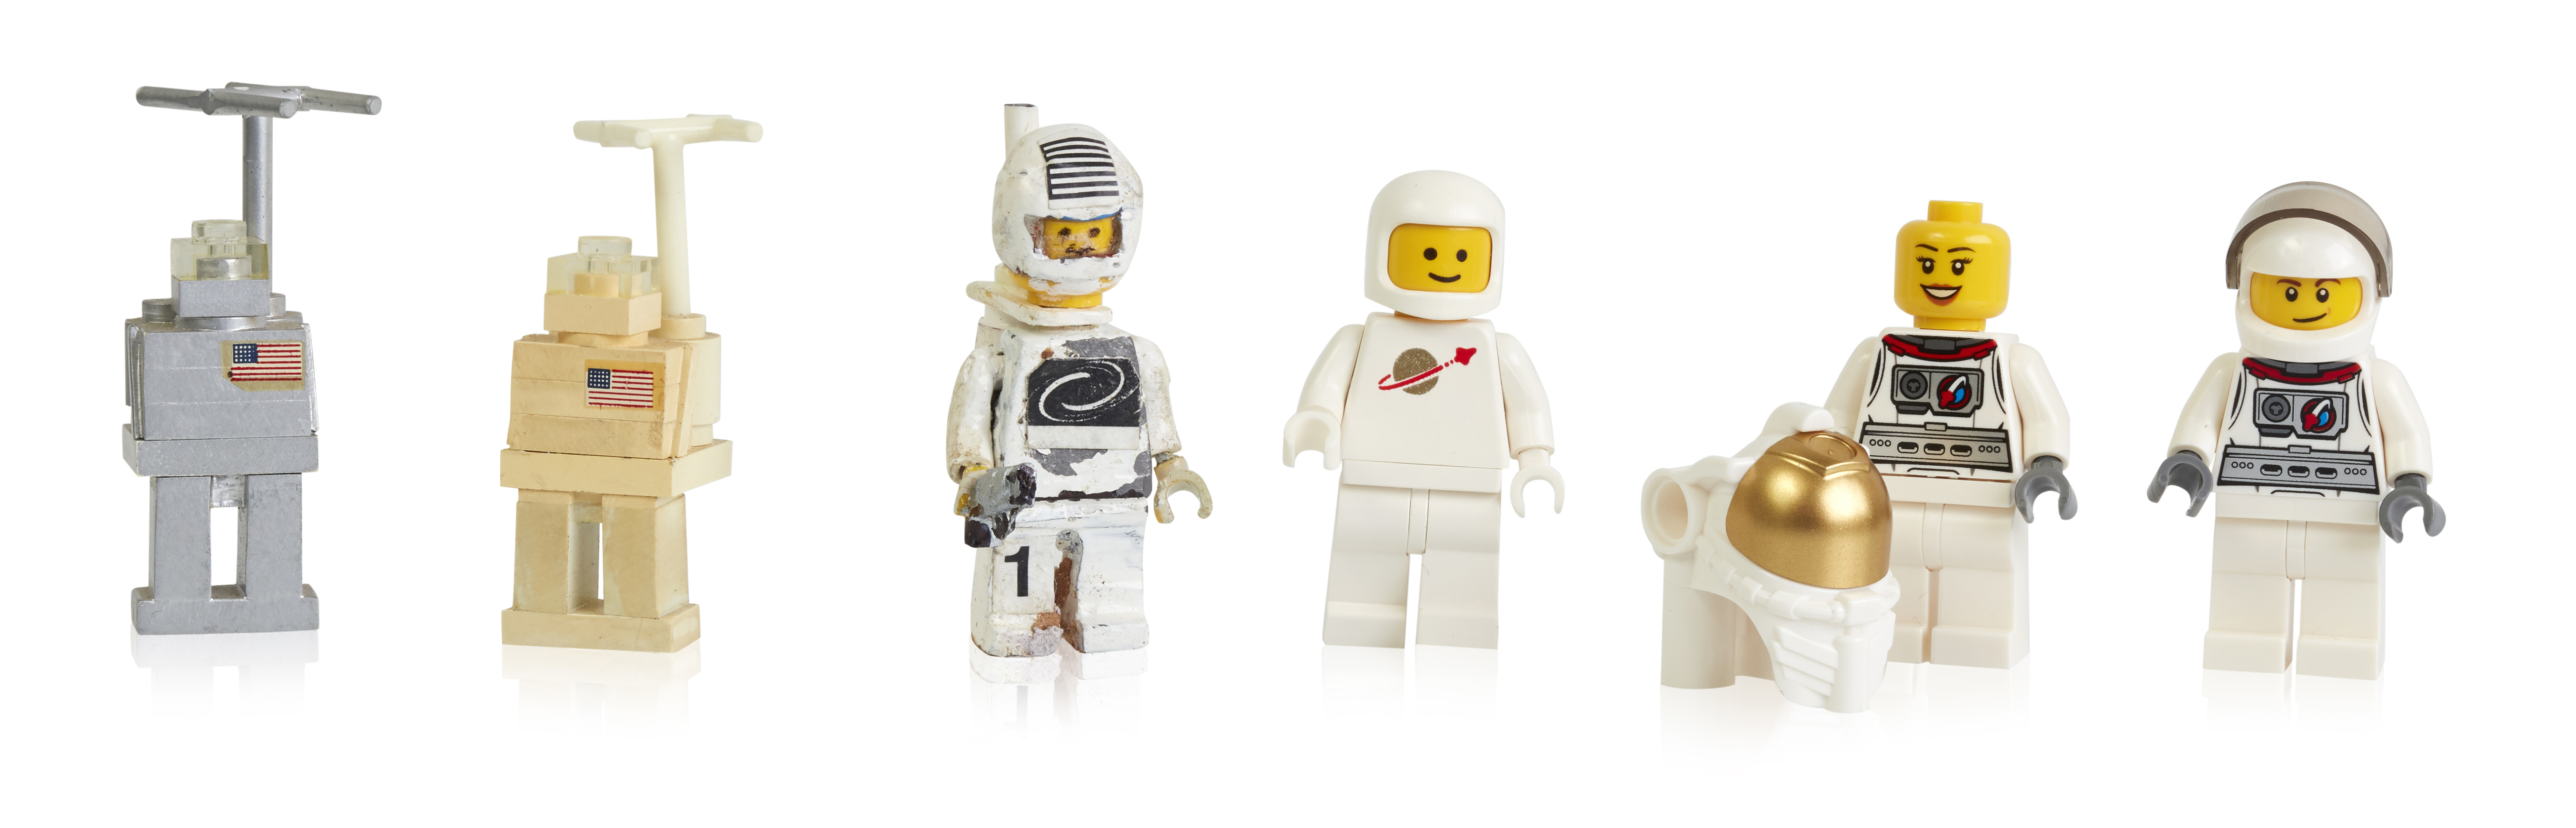 early-prototypes-first-and-more-recent-space-minifigures.jpg